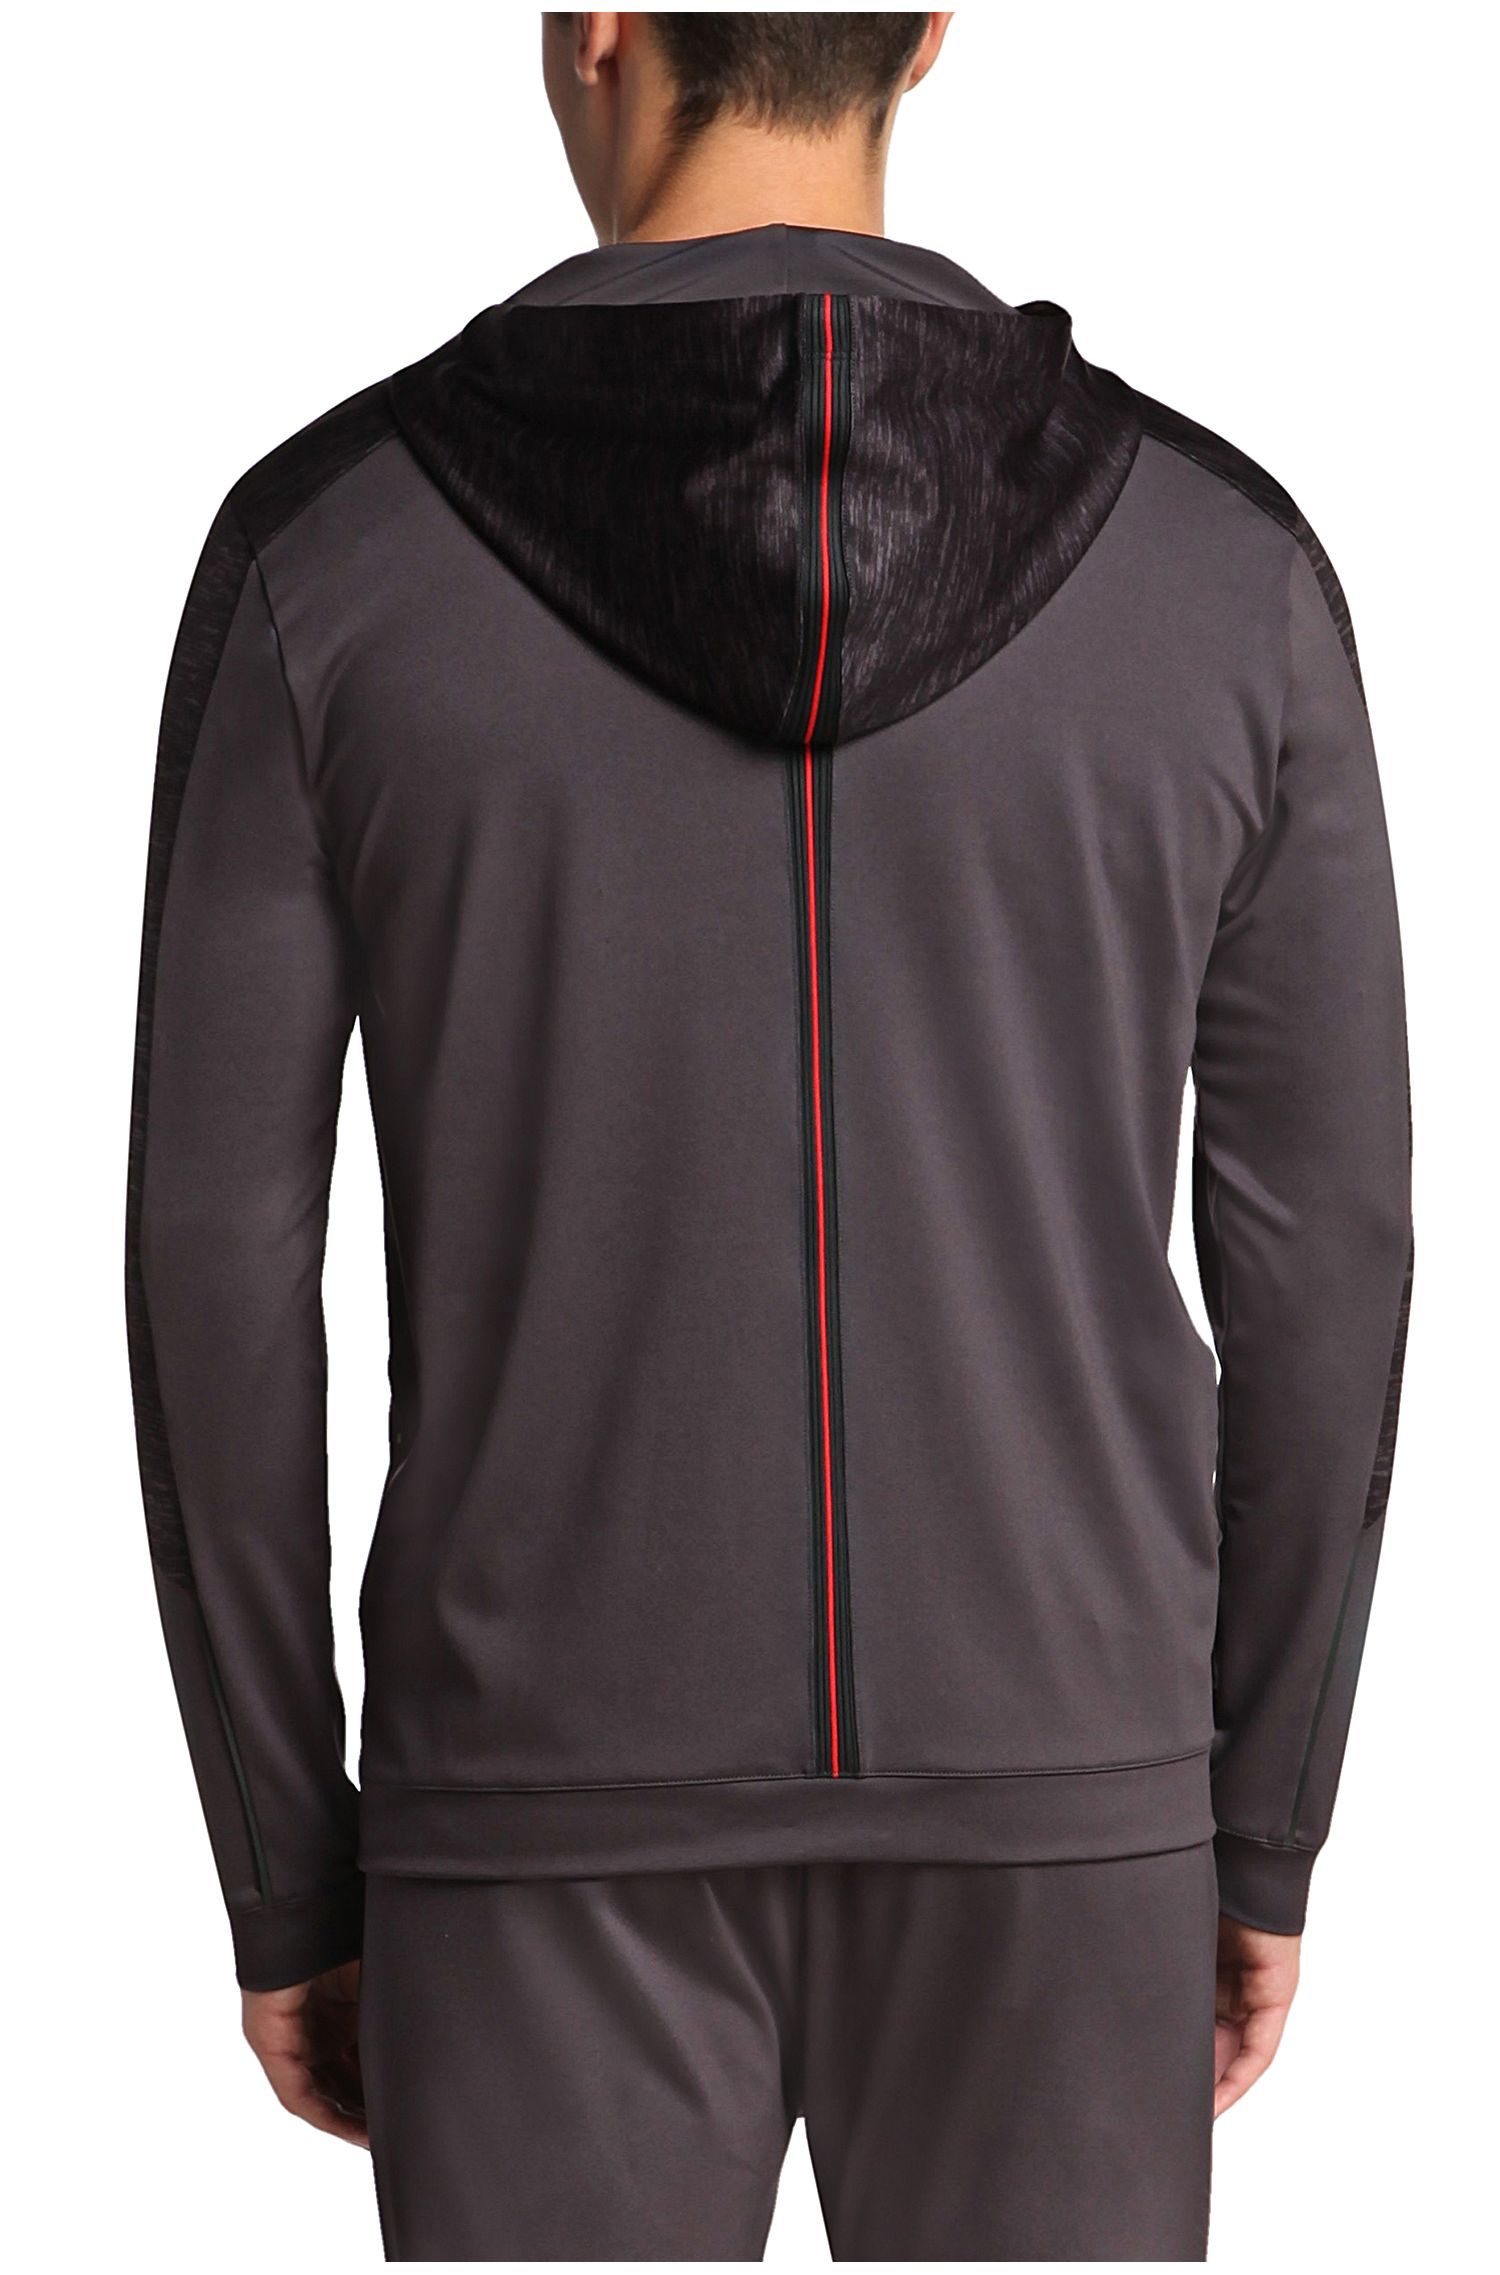 Regular-Fit Sweatshirt-Jacke mit Kapuze: ´Saggytech`